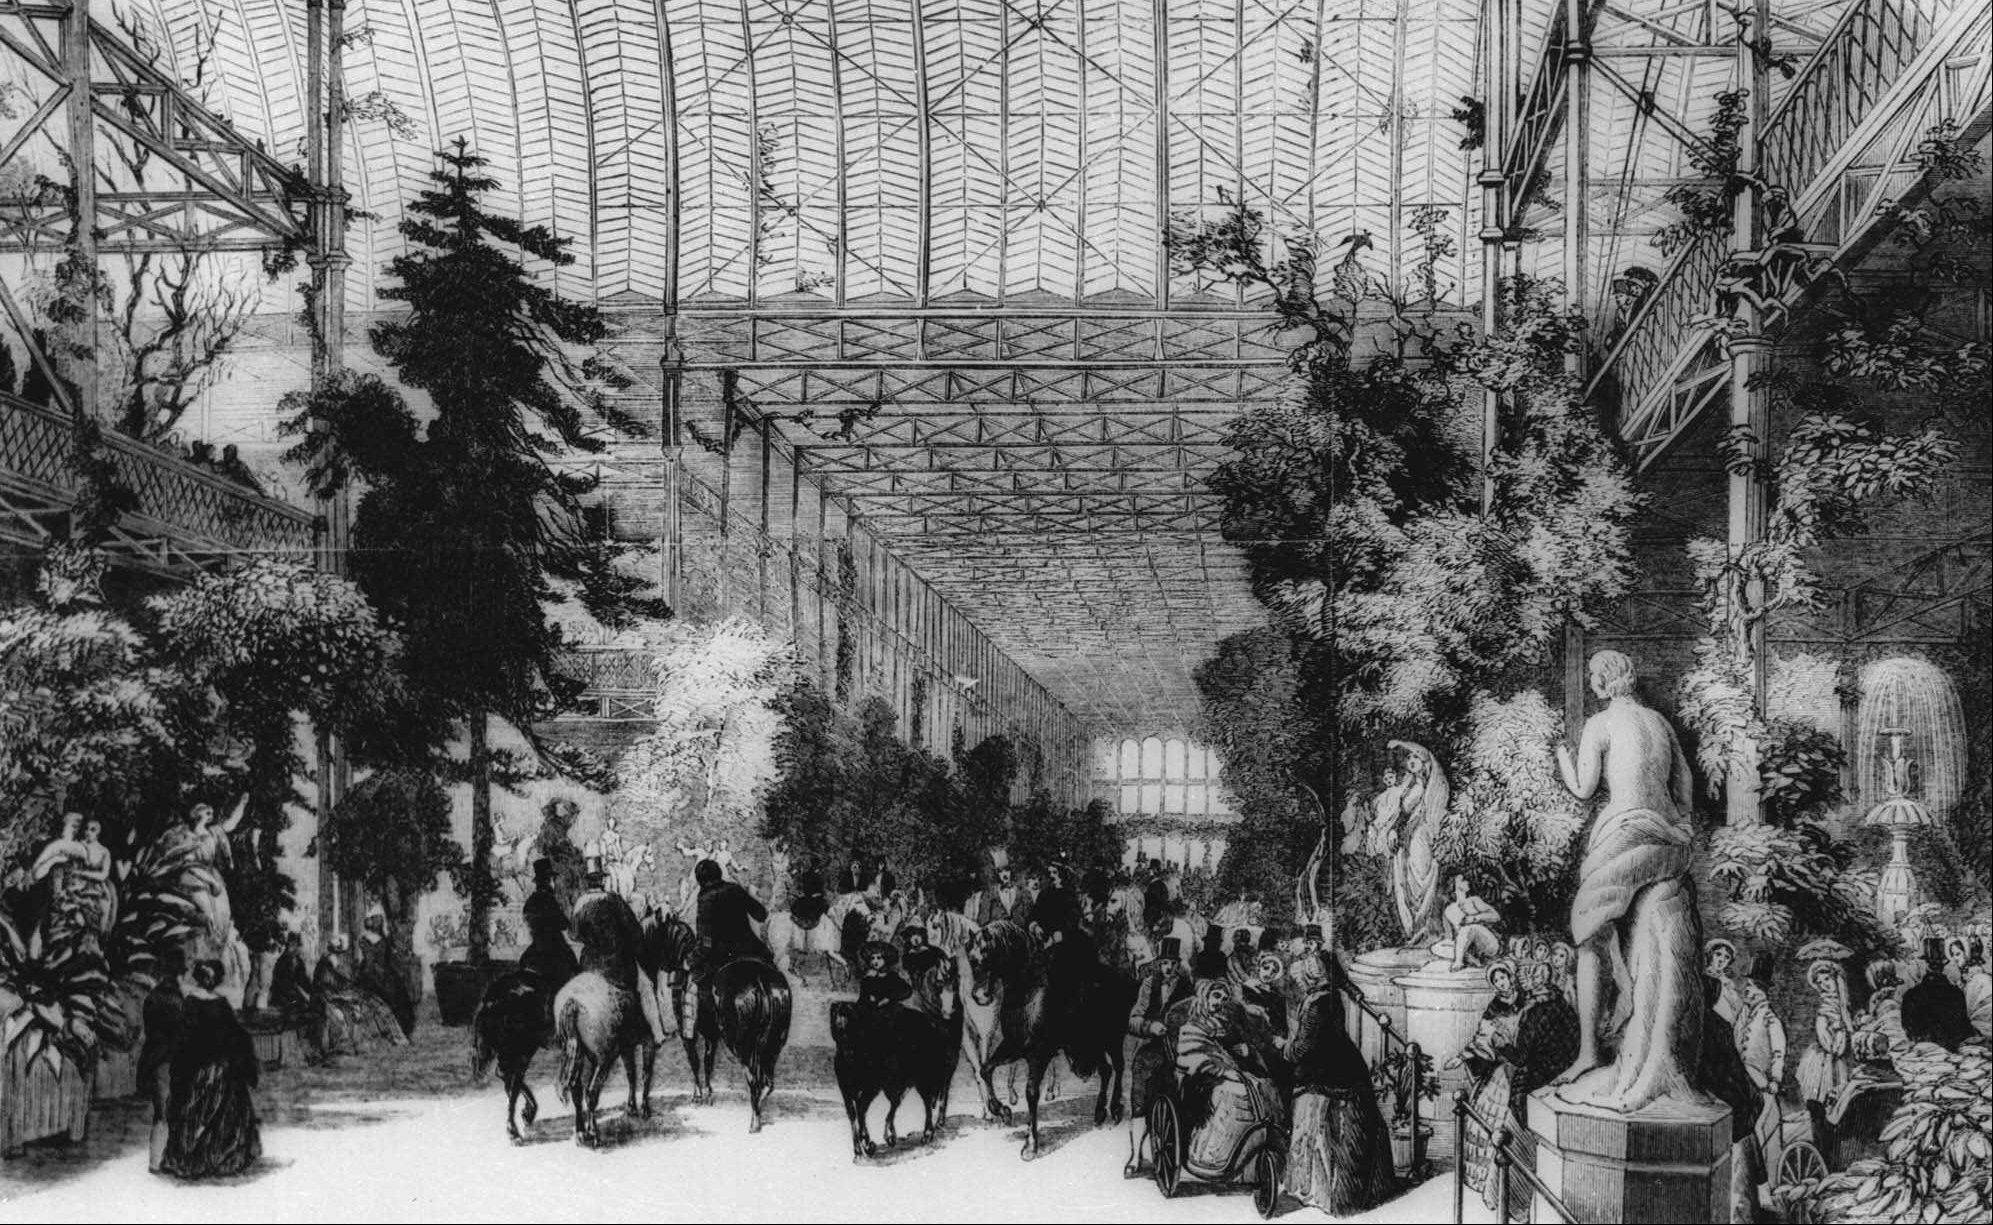 An undated an artist's sketch shows a scene at the Great Exhibition of the Industry of All Nations at the Crystal Palace in Hyde Park, London in 1851.